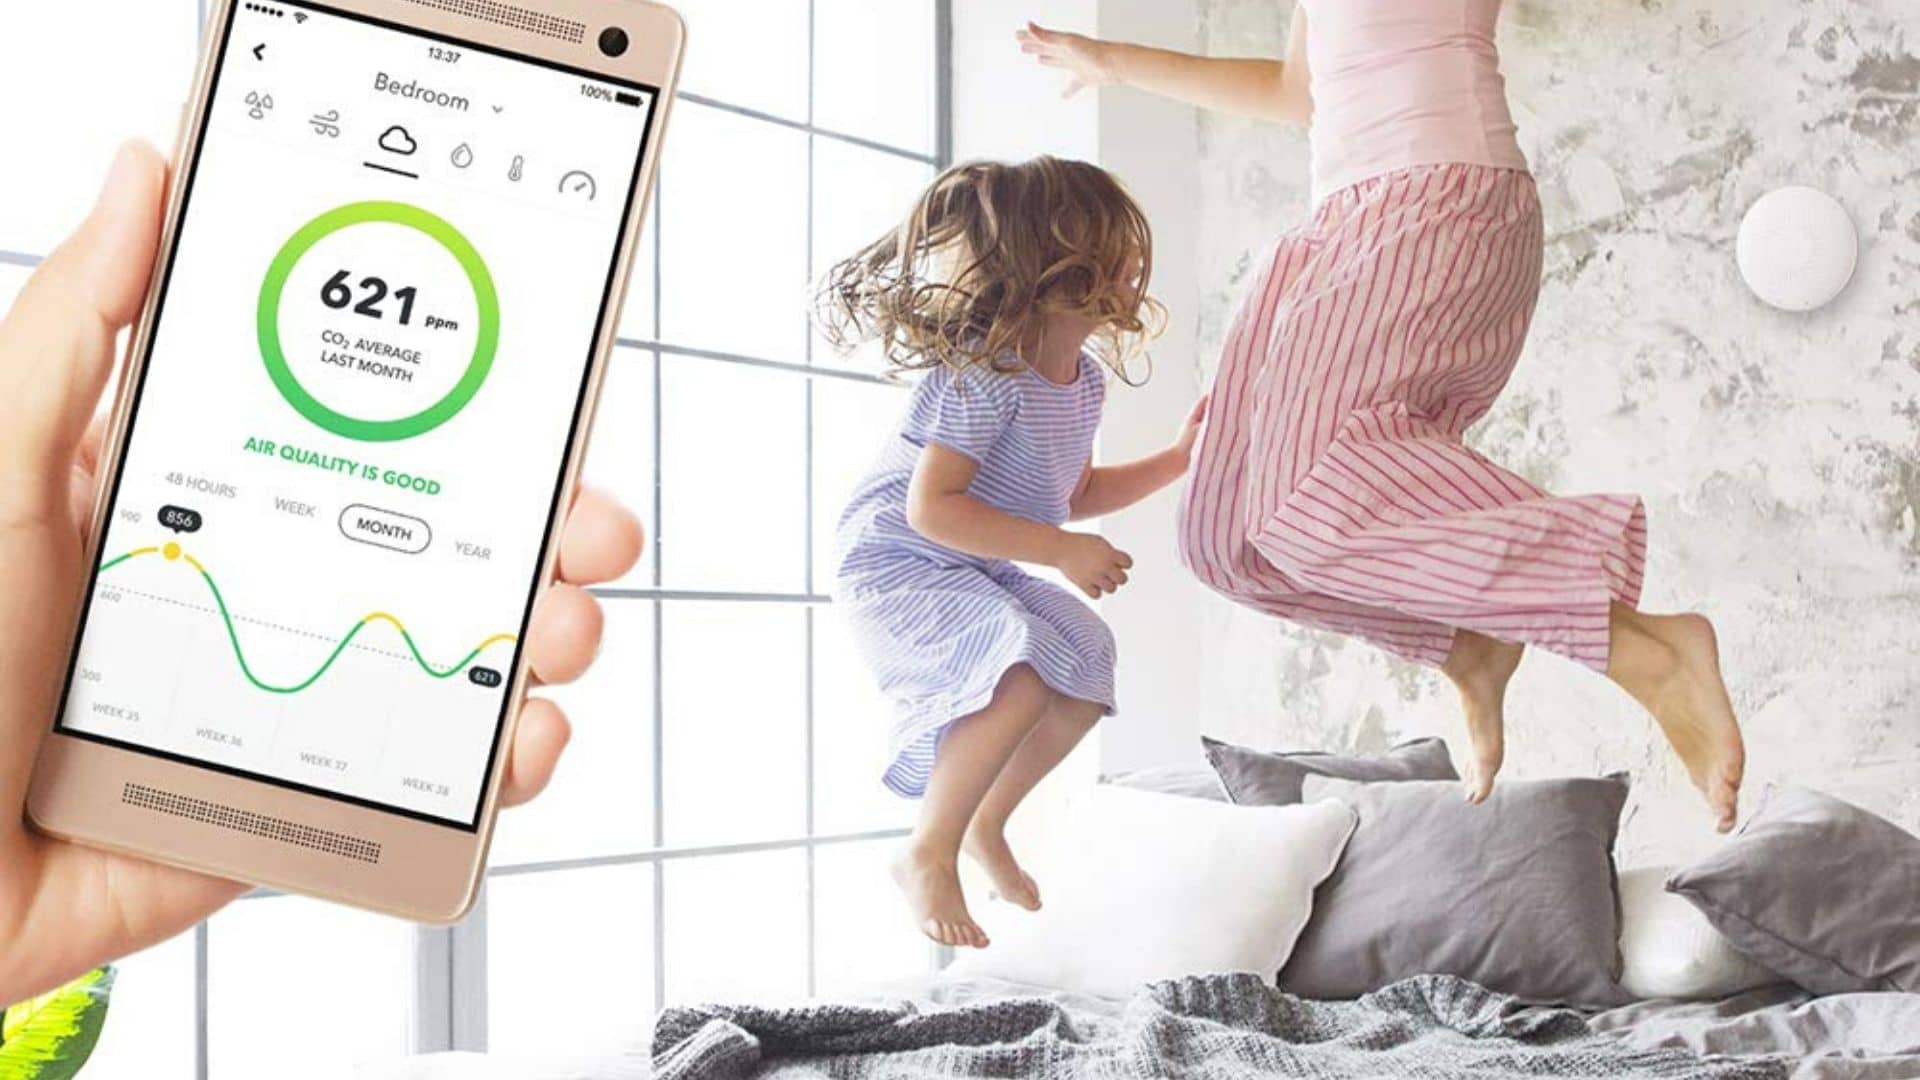 image of person holding phone with airthings mobile app while girl jumps on bed